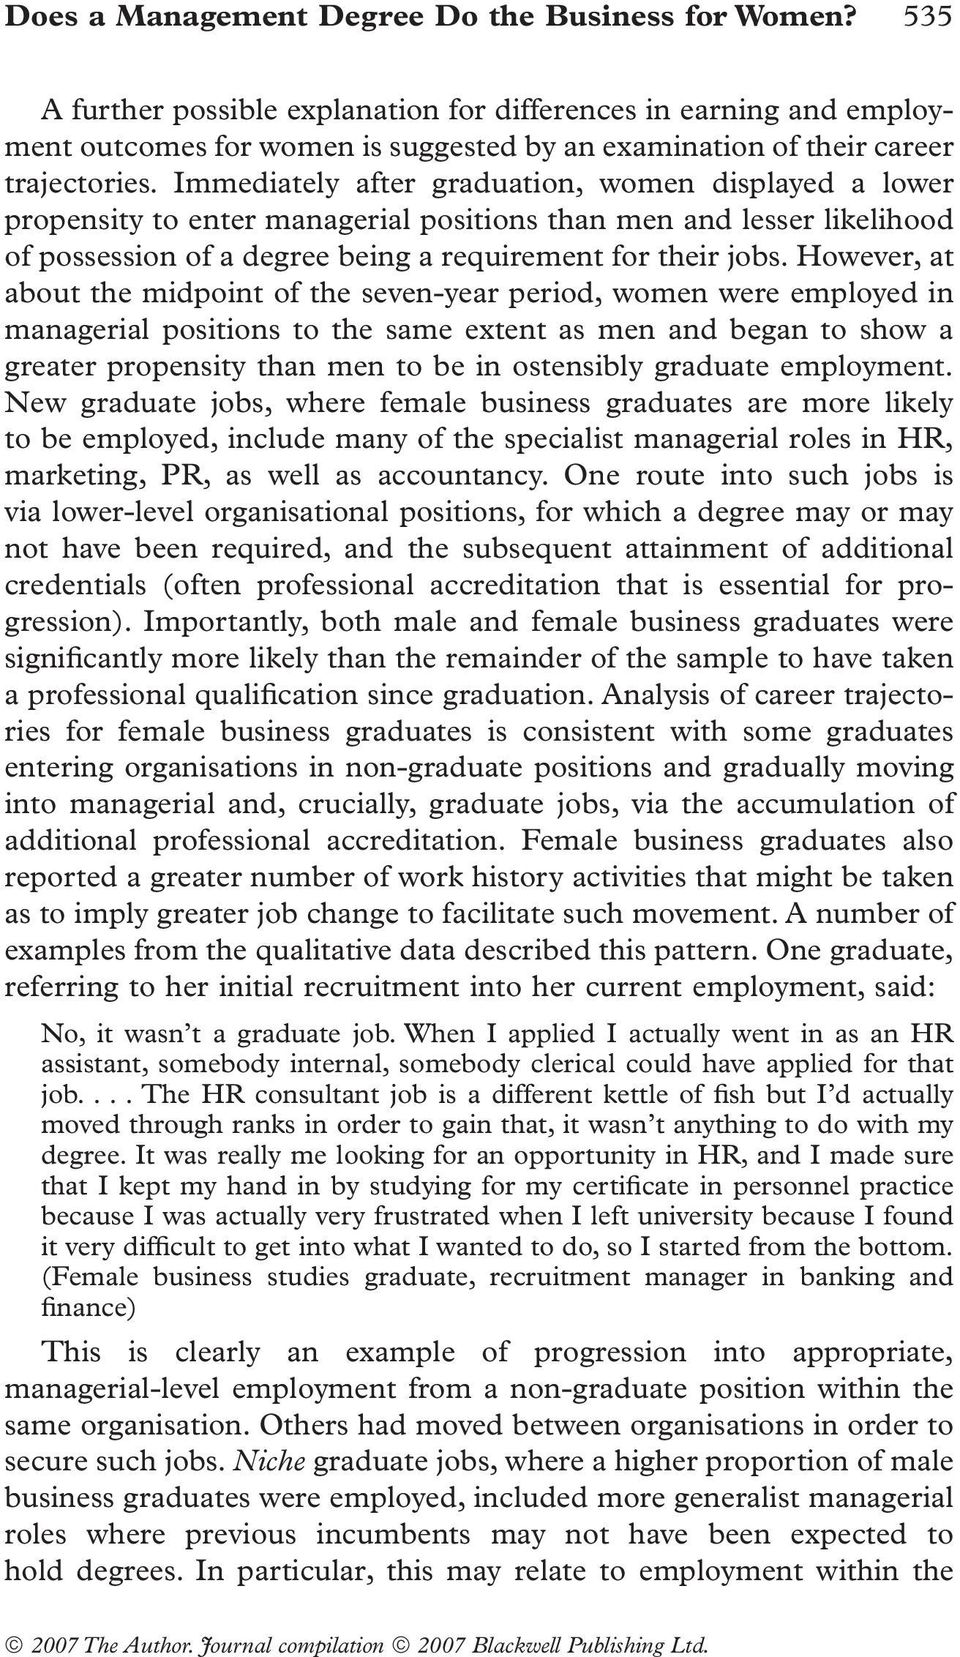 Immediately after graduation, women displayed a lower propensity to enter managerial positions than men and lesser likelihood of possession of a degree being a requirement for their jobs.